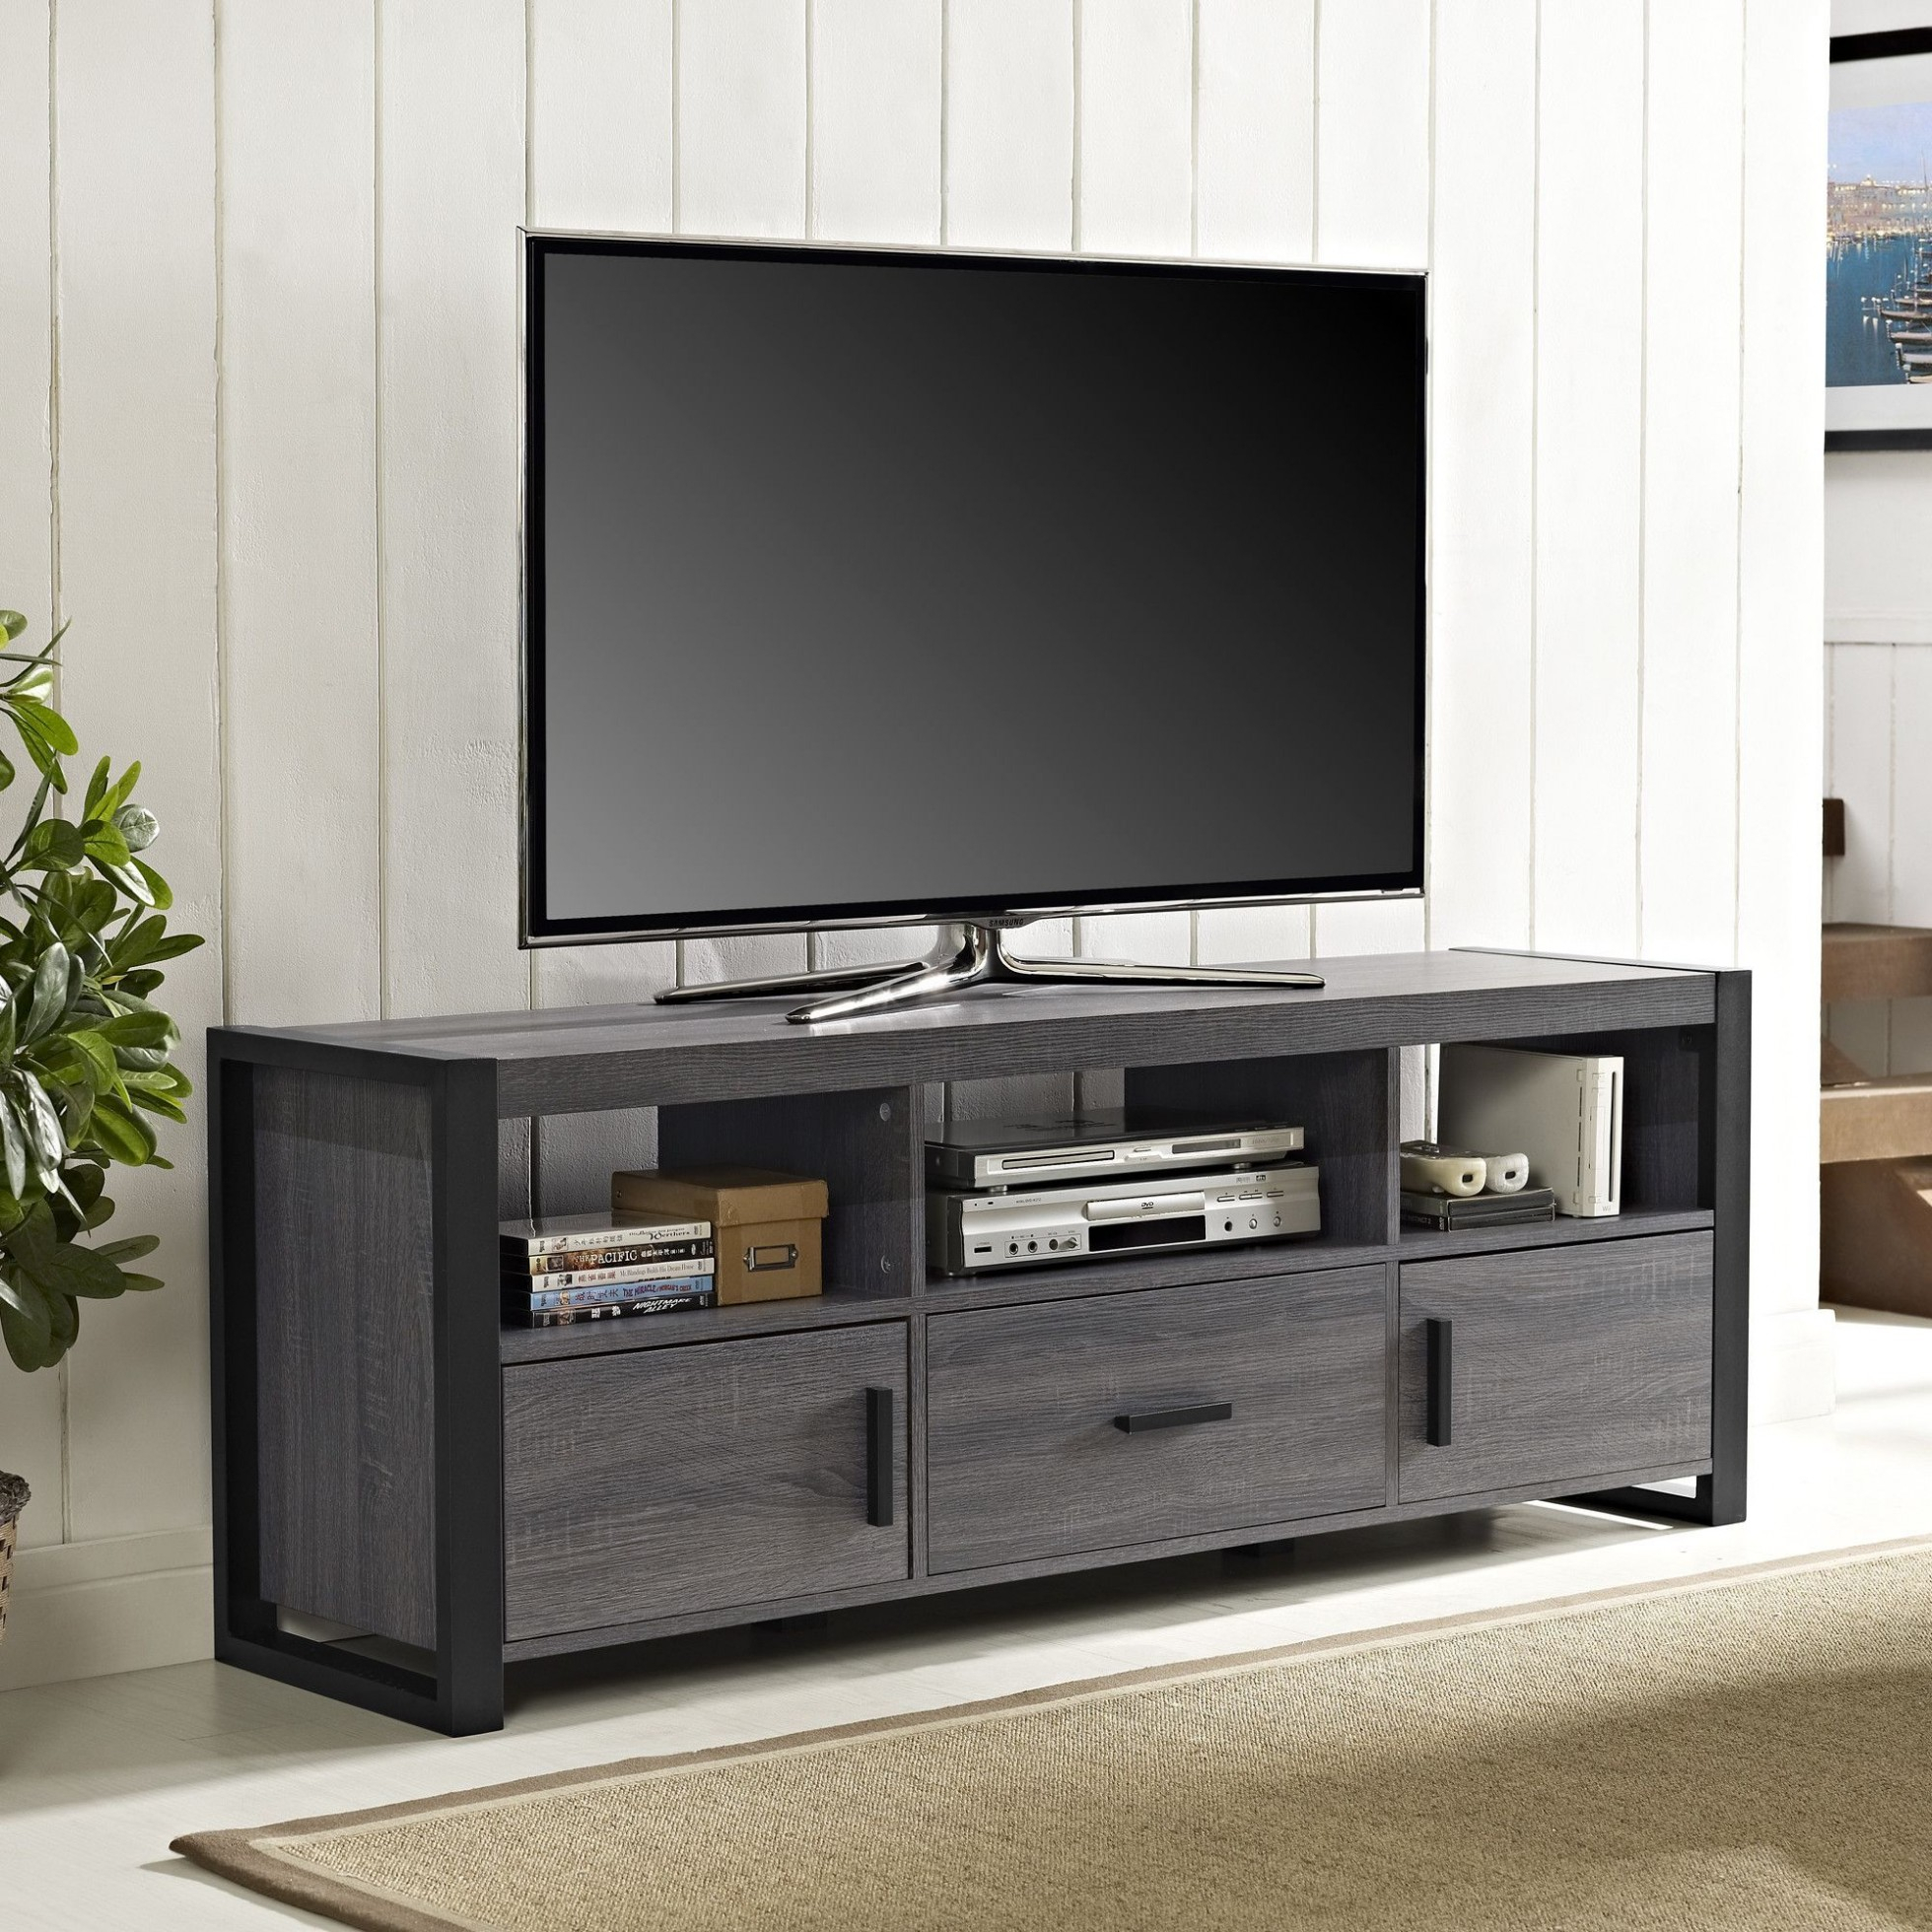 Inspirational 74 Inch Tv Stand Sinclair Grey : Foothillfolk Designs For Sinclair Grey 74 Inch Tv Stands (View 15 of 30)